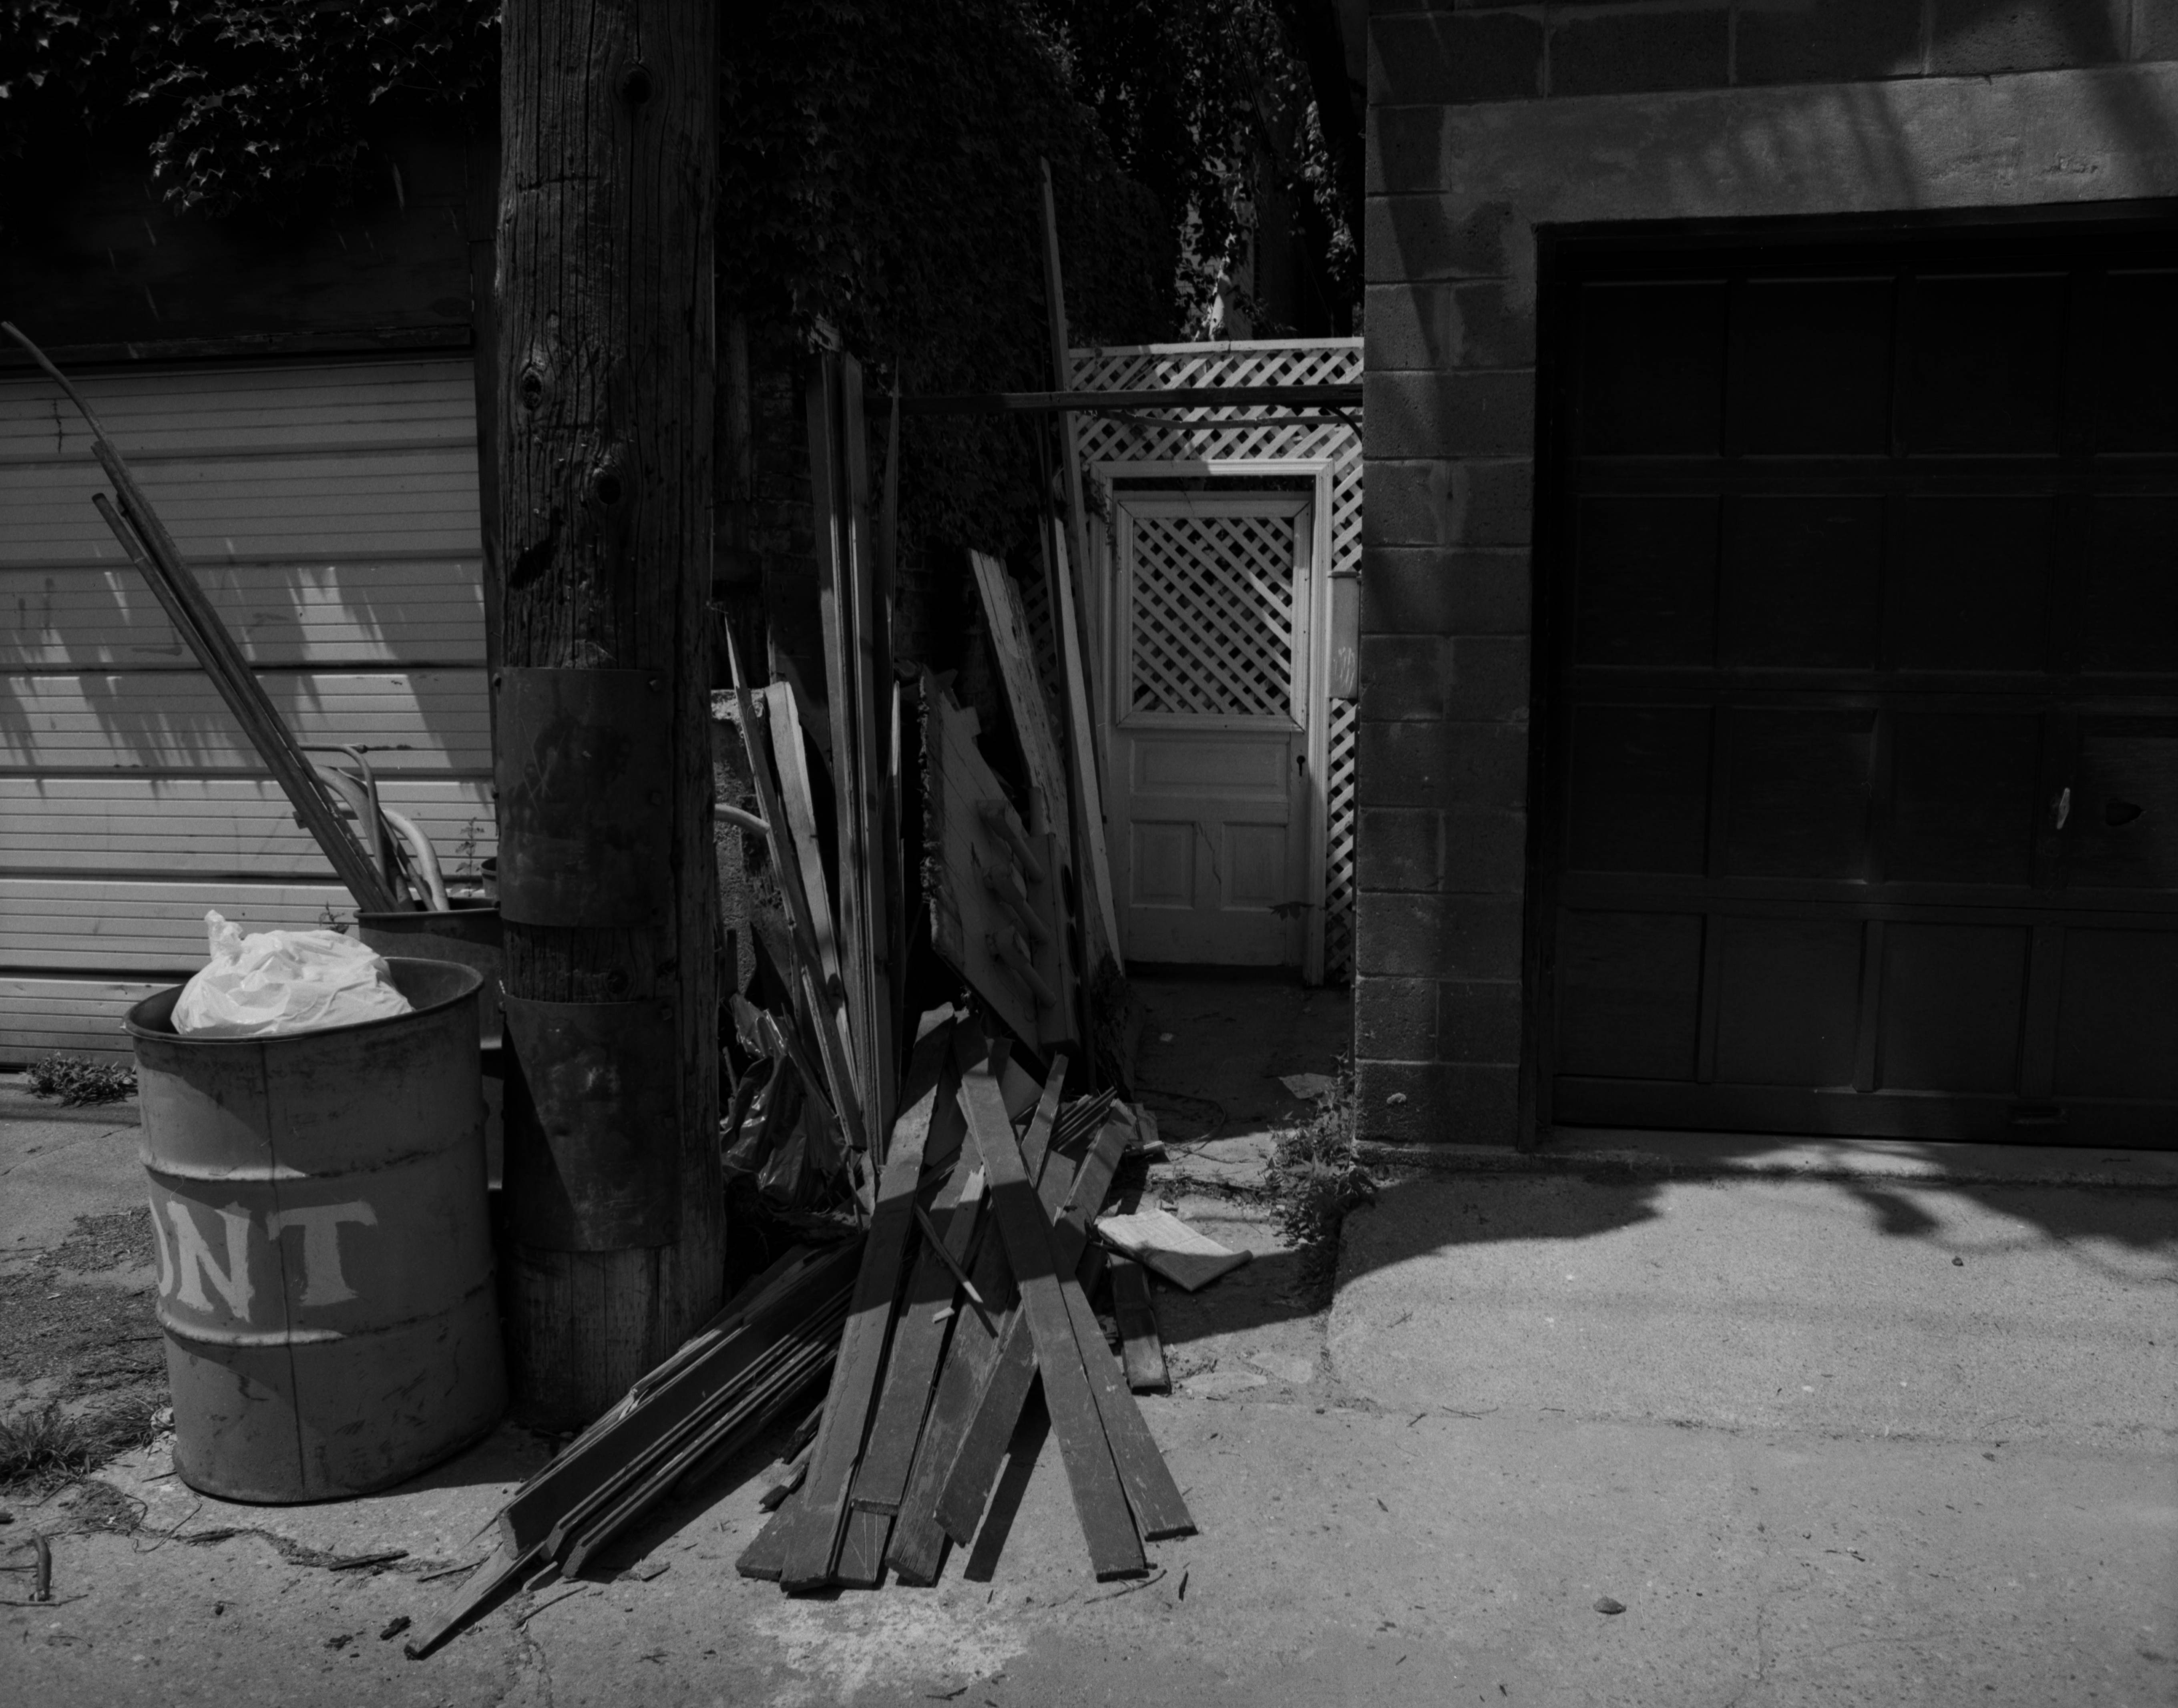 An alley with a telephone pole that is surrounded by a metal garbage bin, and pieces of wood on the ground.